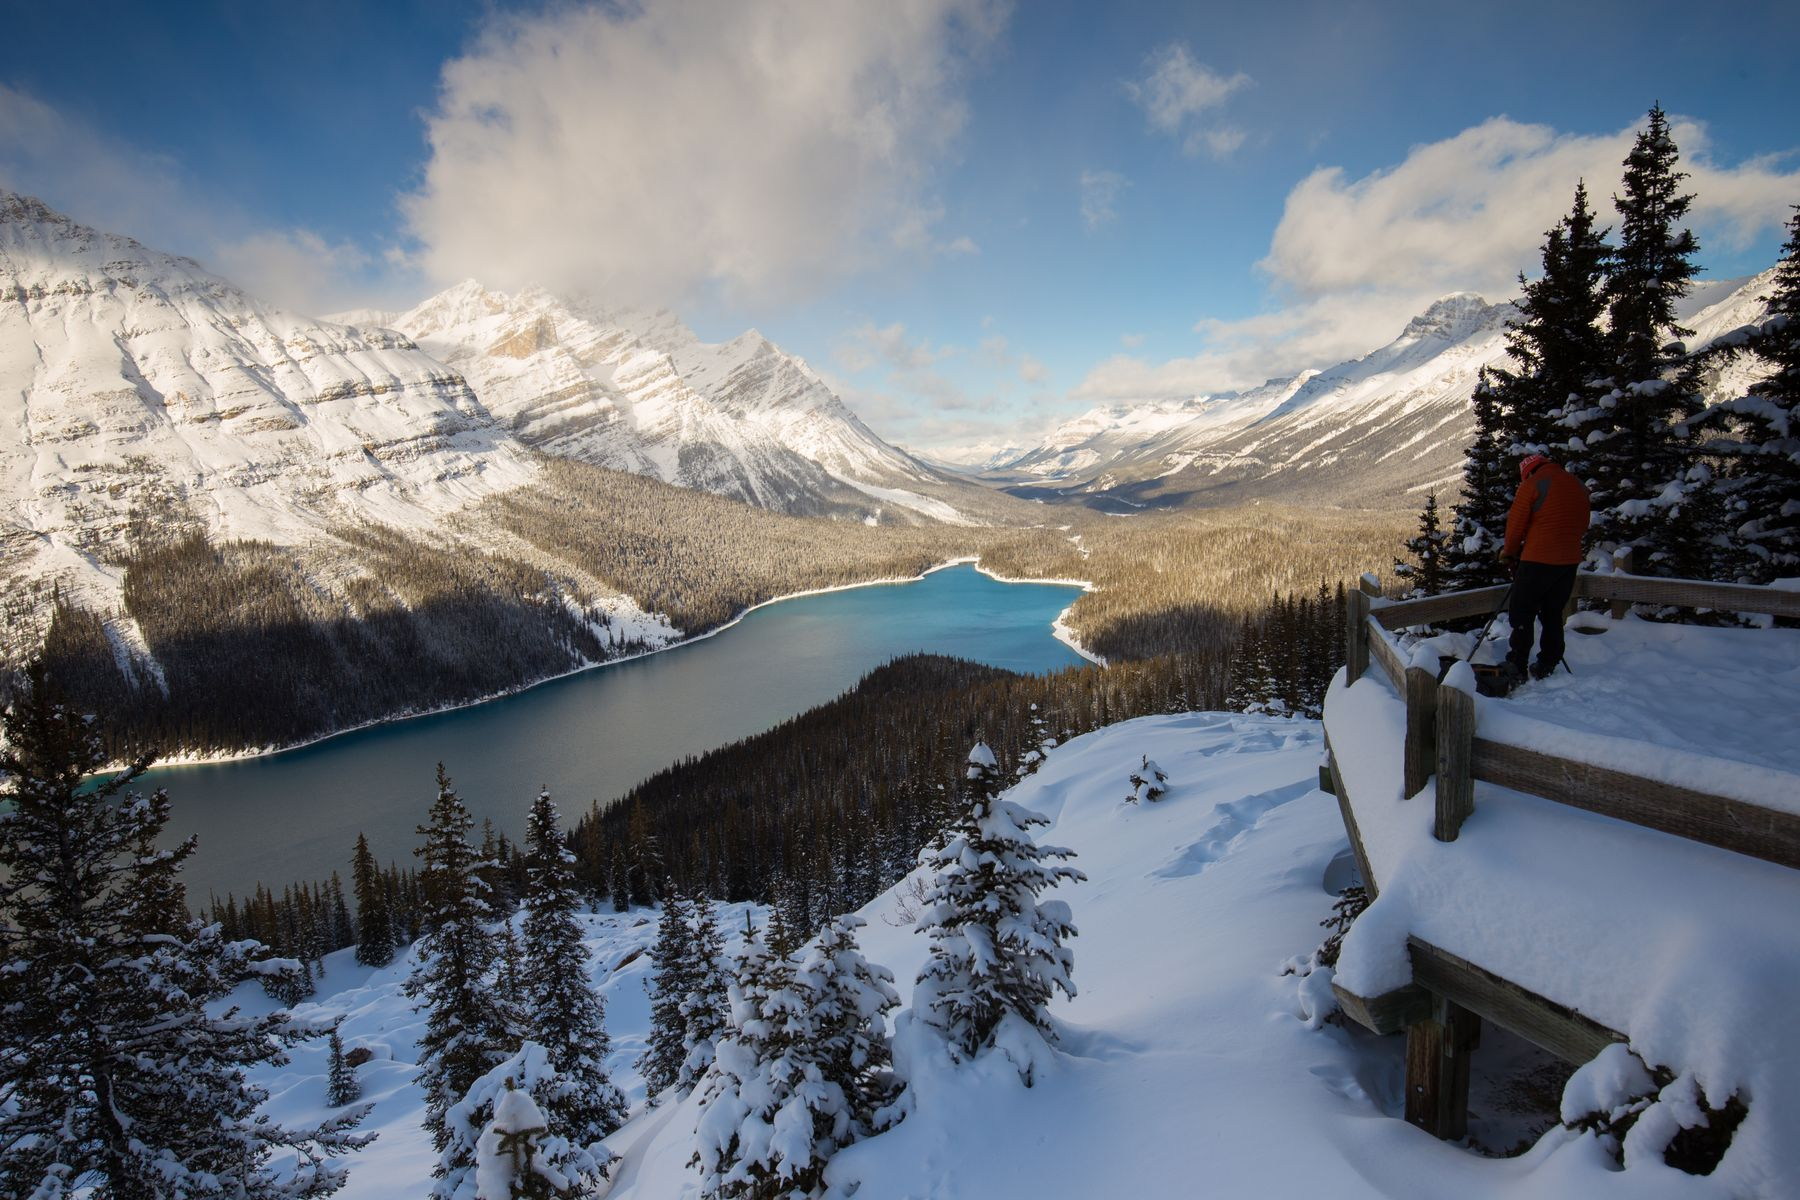 view of a lake along the Icefields Parkway, a major tourist attraction of Banff and Jasper in the Canadian Rockies